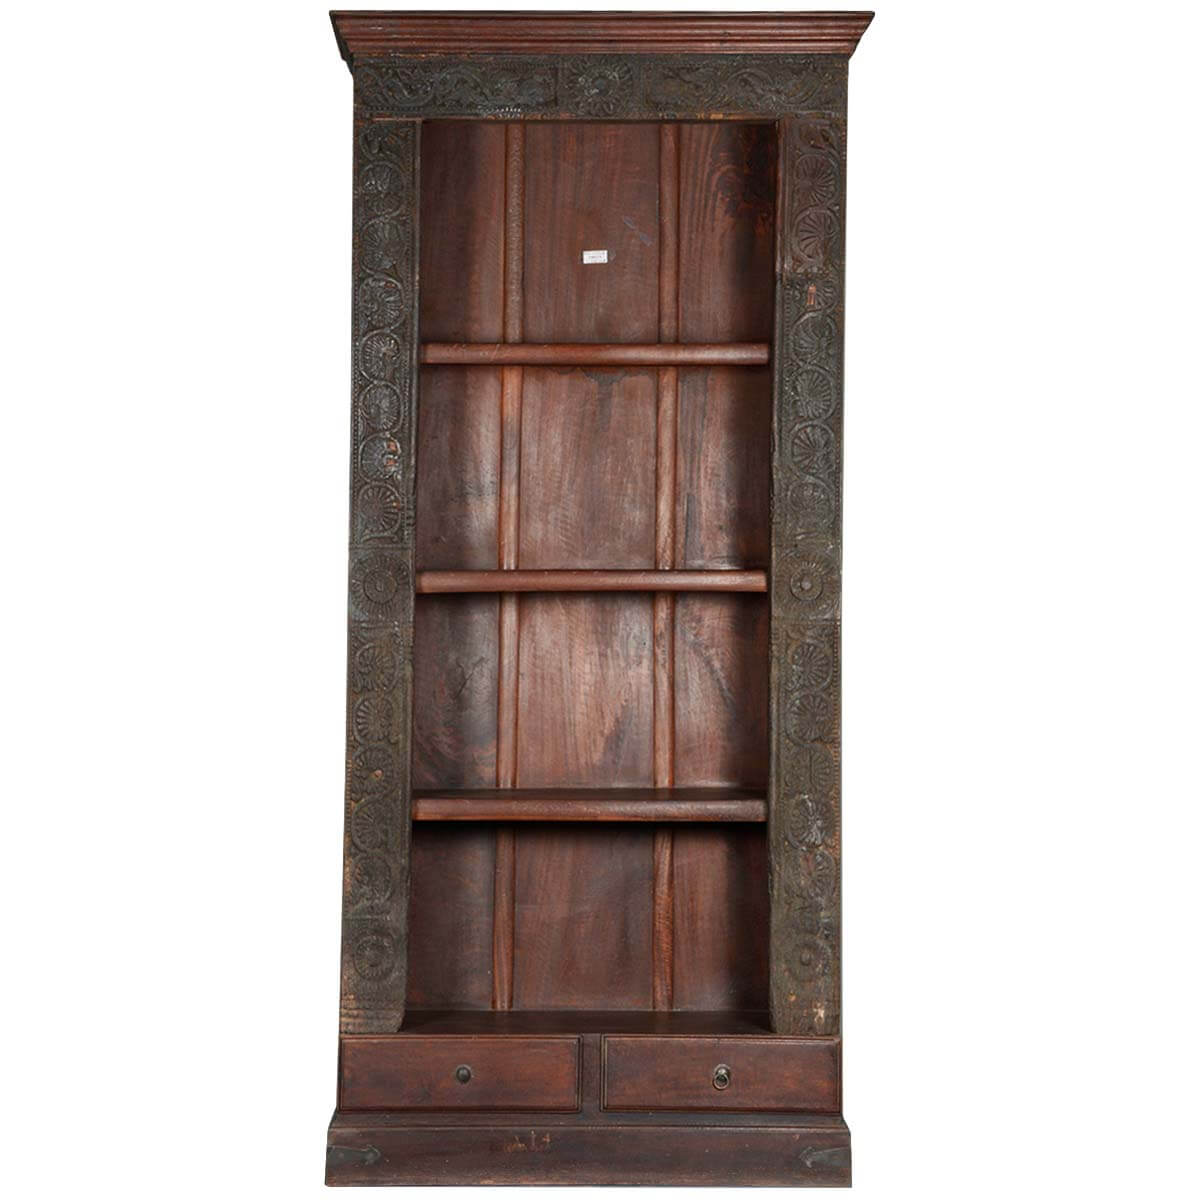 Gothic reclaimed wood shelf open display bookcase w